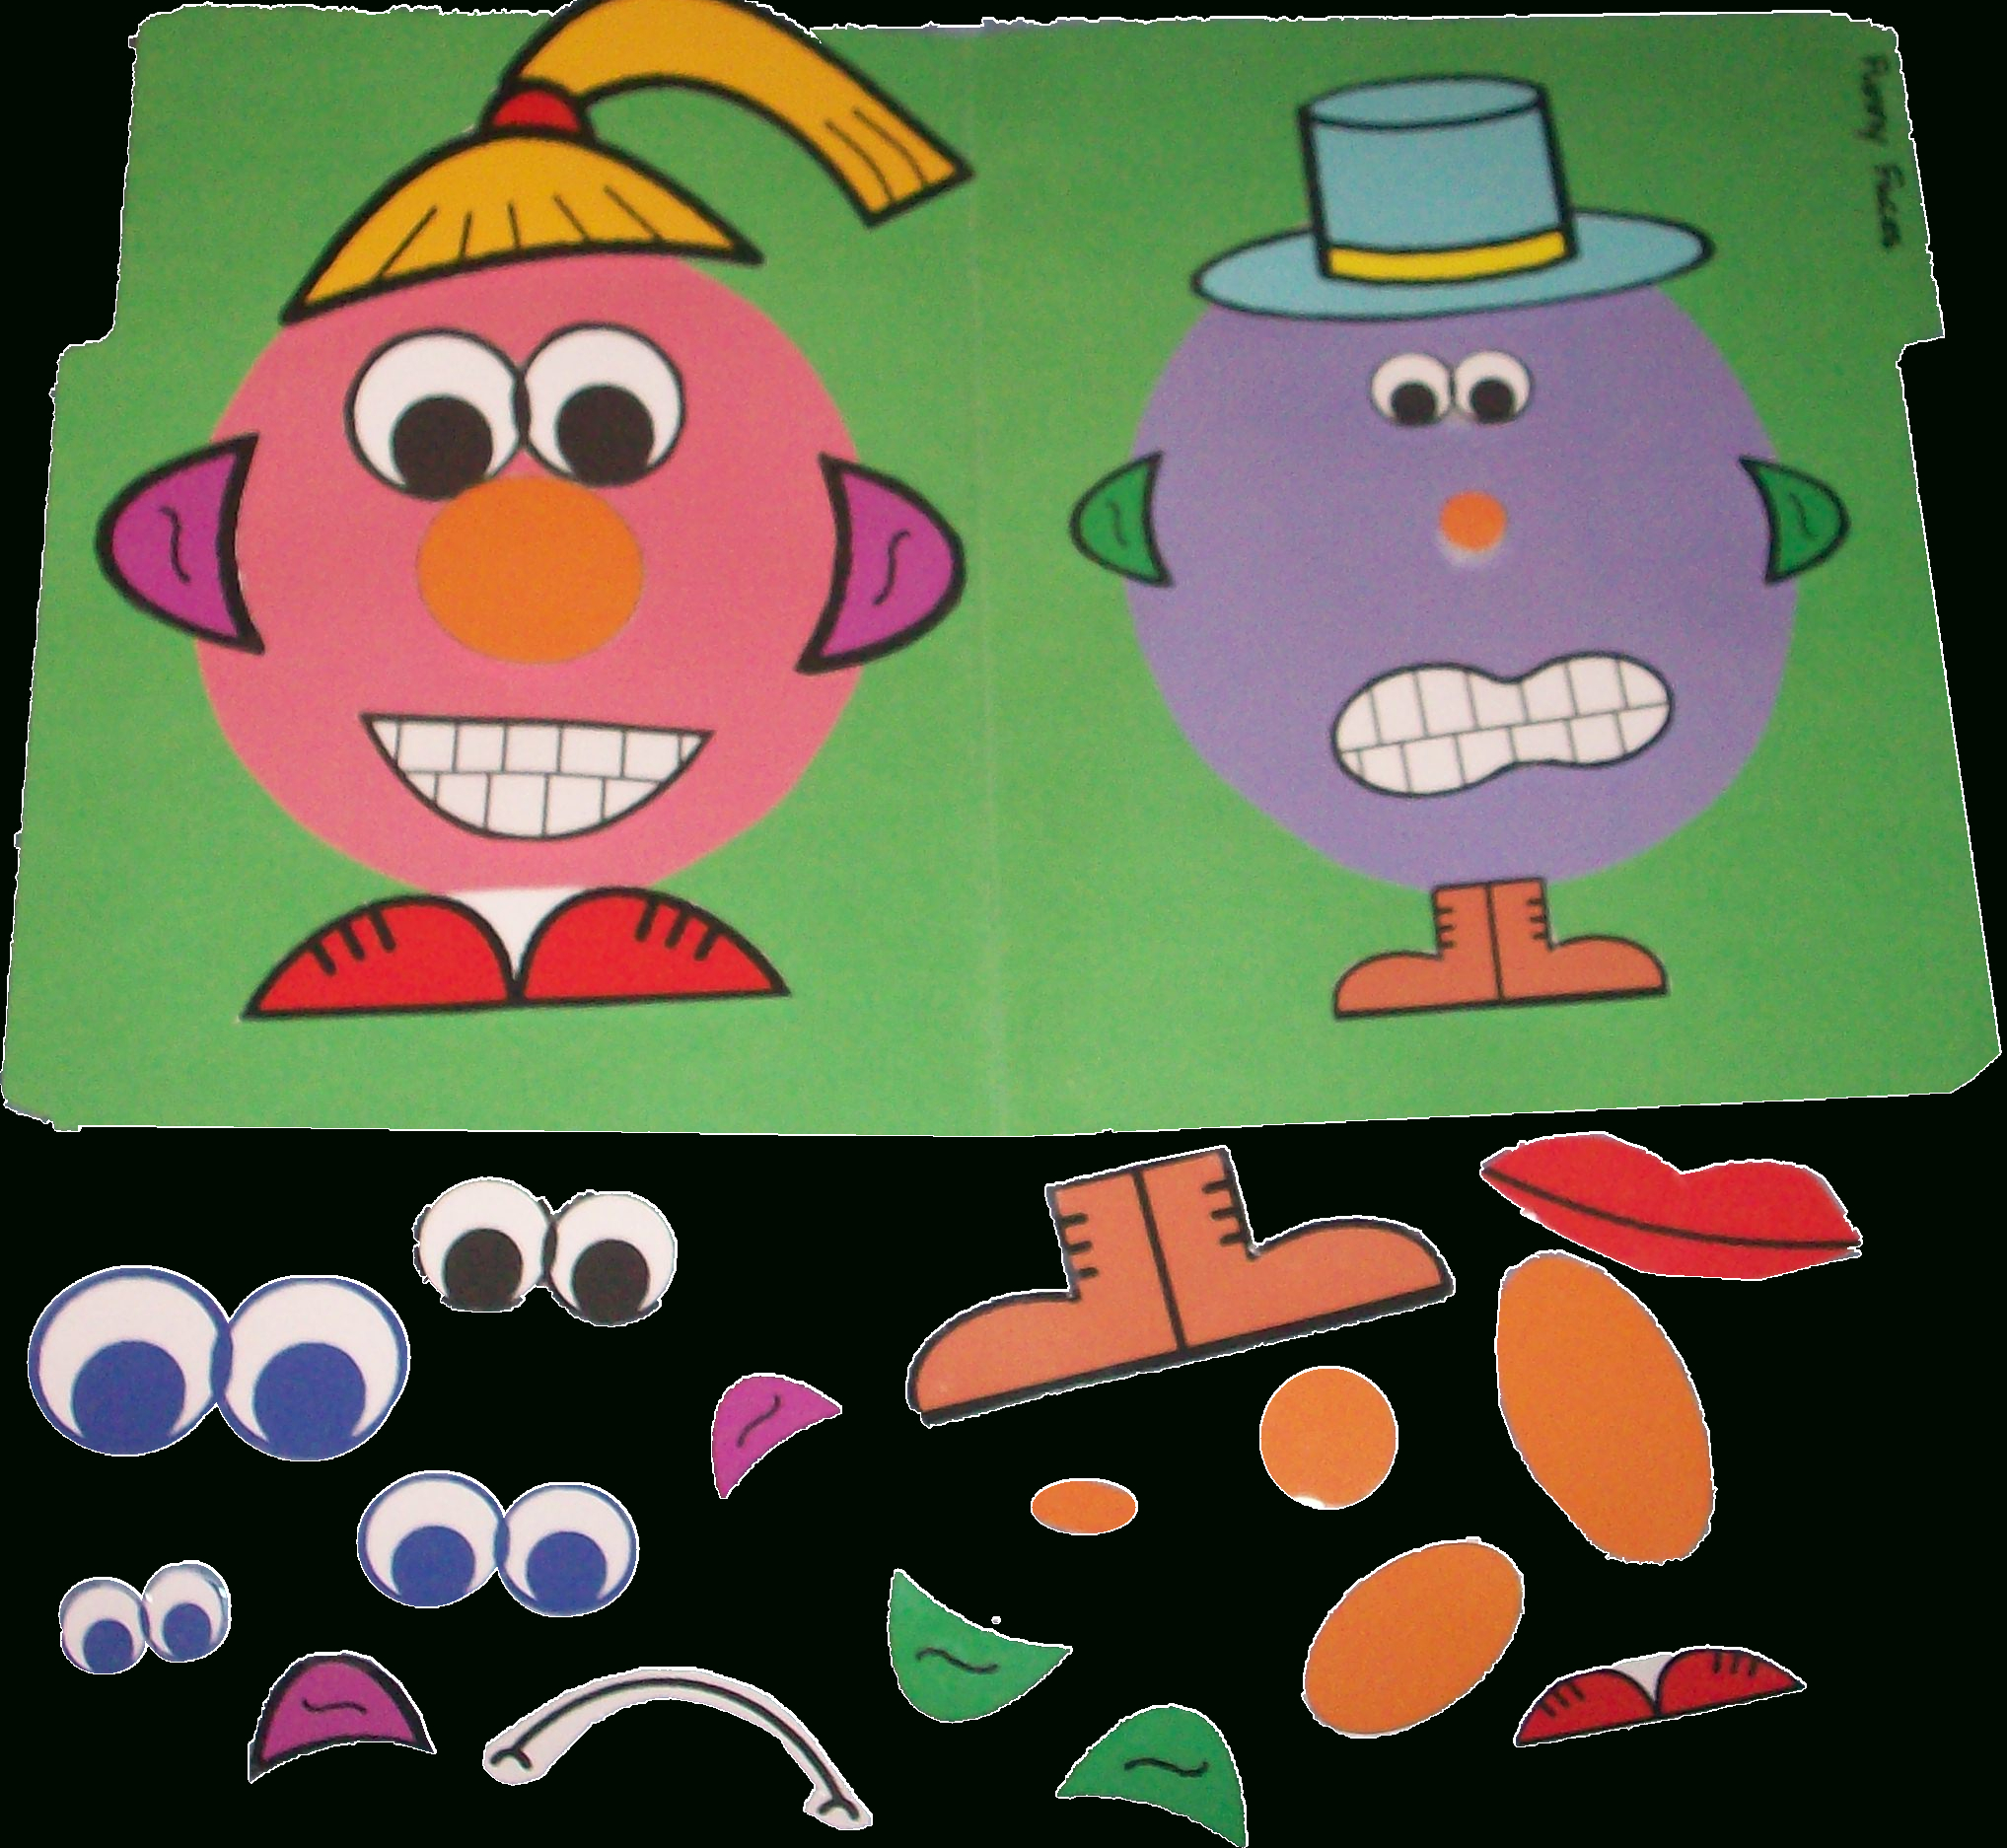 Speech And Language Games And Cards: Free Printables - Speech And - Free Printable Memory Exercises